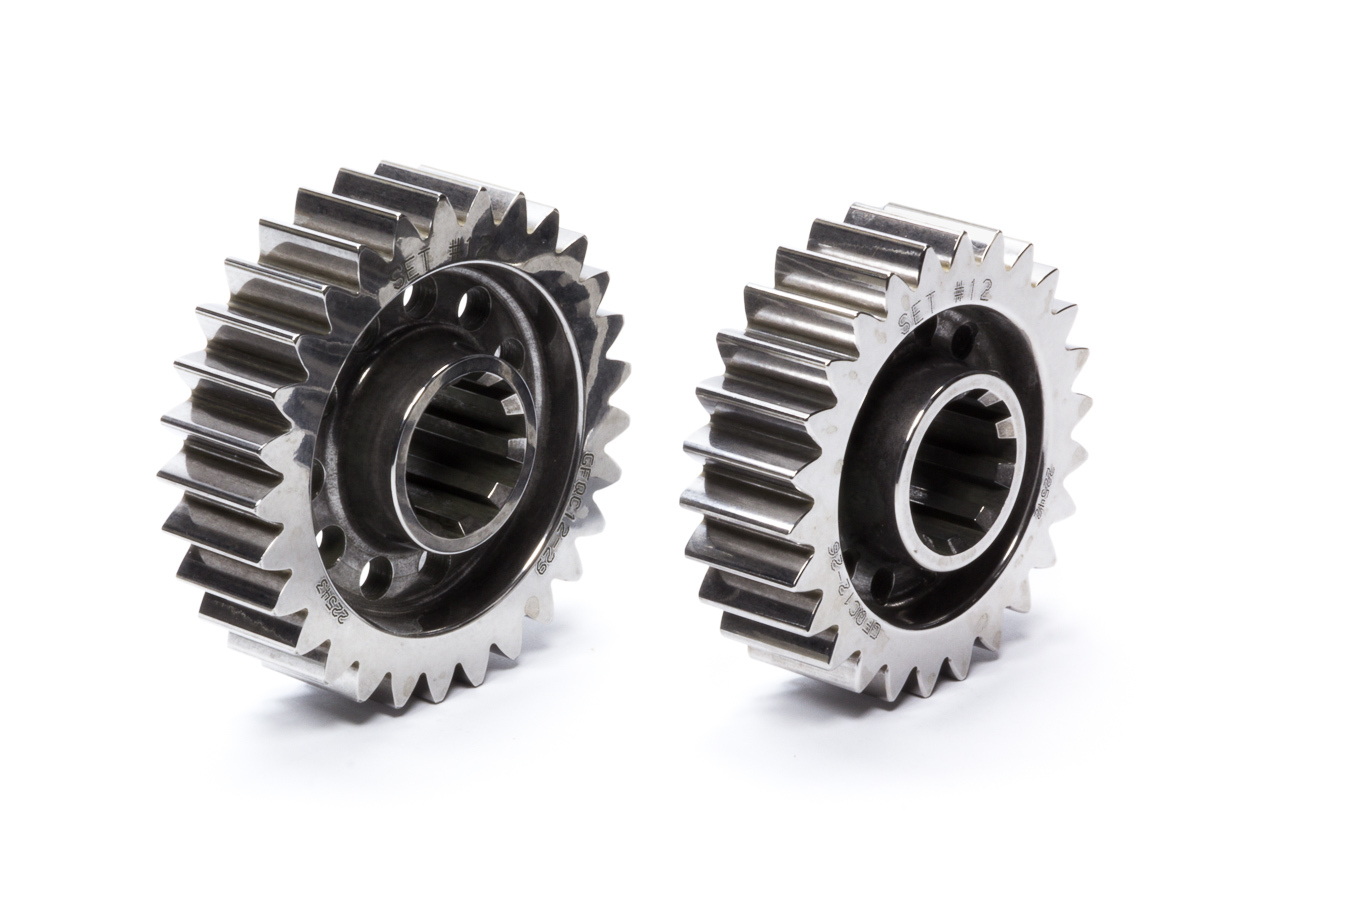 Diversified Machine Friction Fighter Quick Change Gears 12